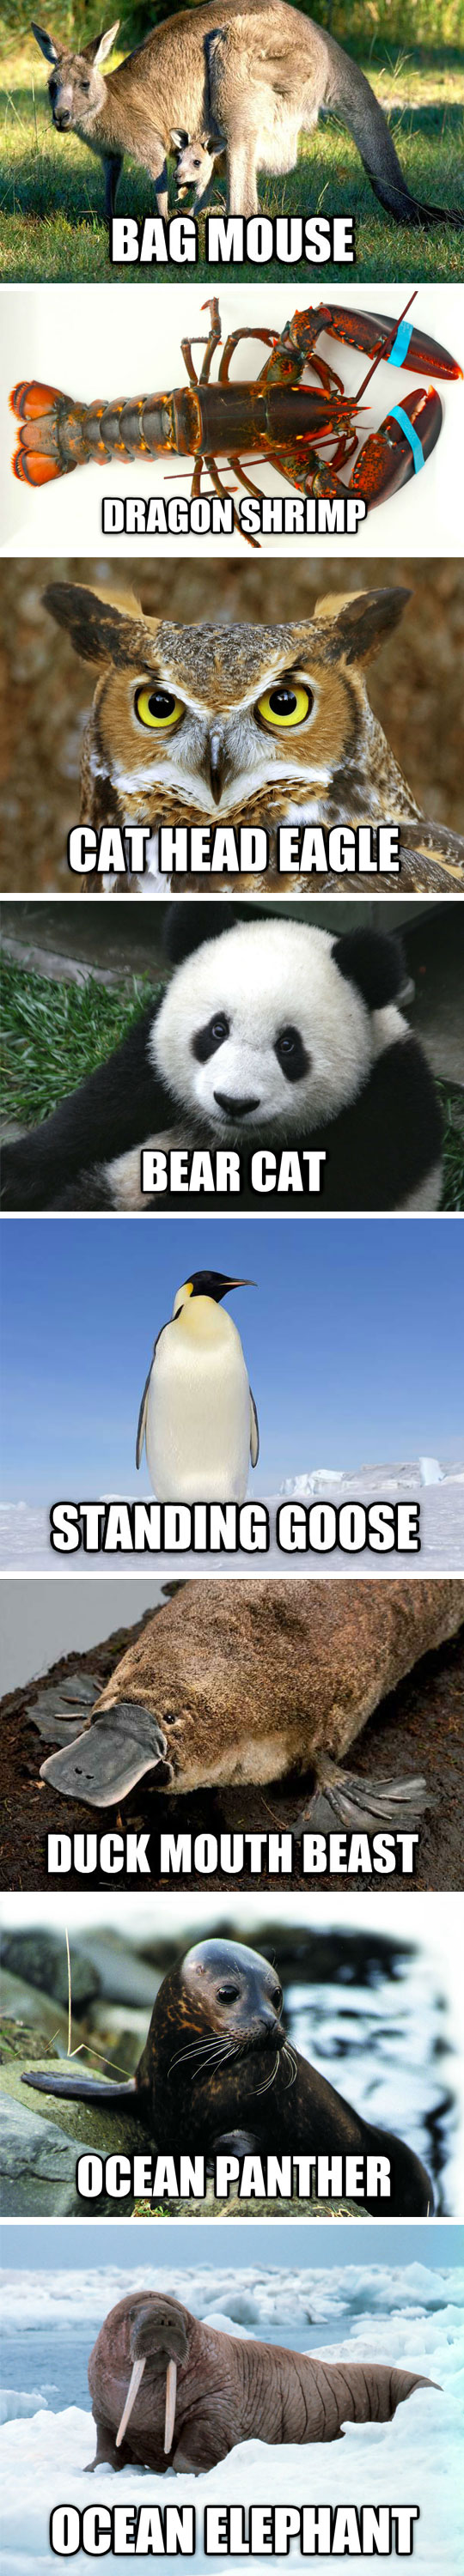 Funny Names For Animals Meme : Duck mouth beast standing goose and ocean elephant